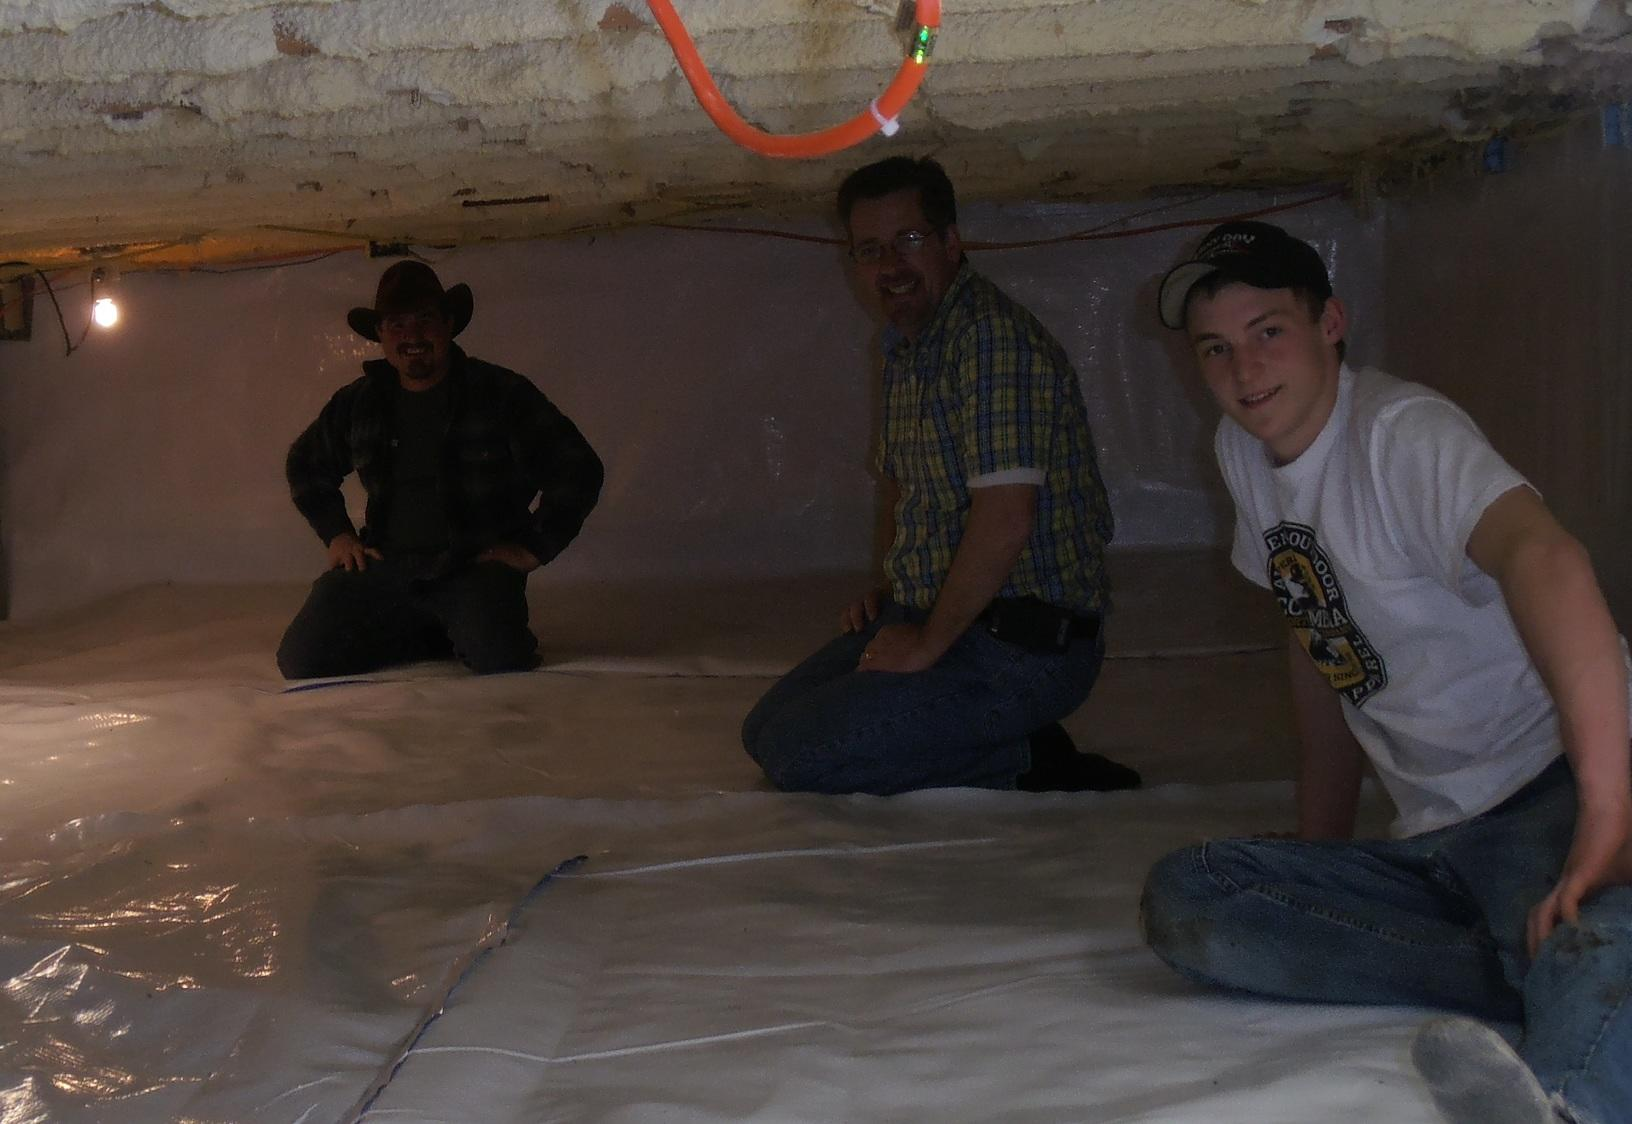 Are you happy with your crawl space?